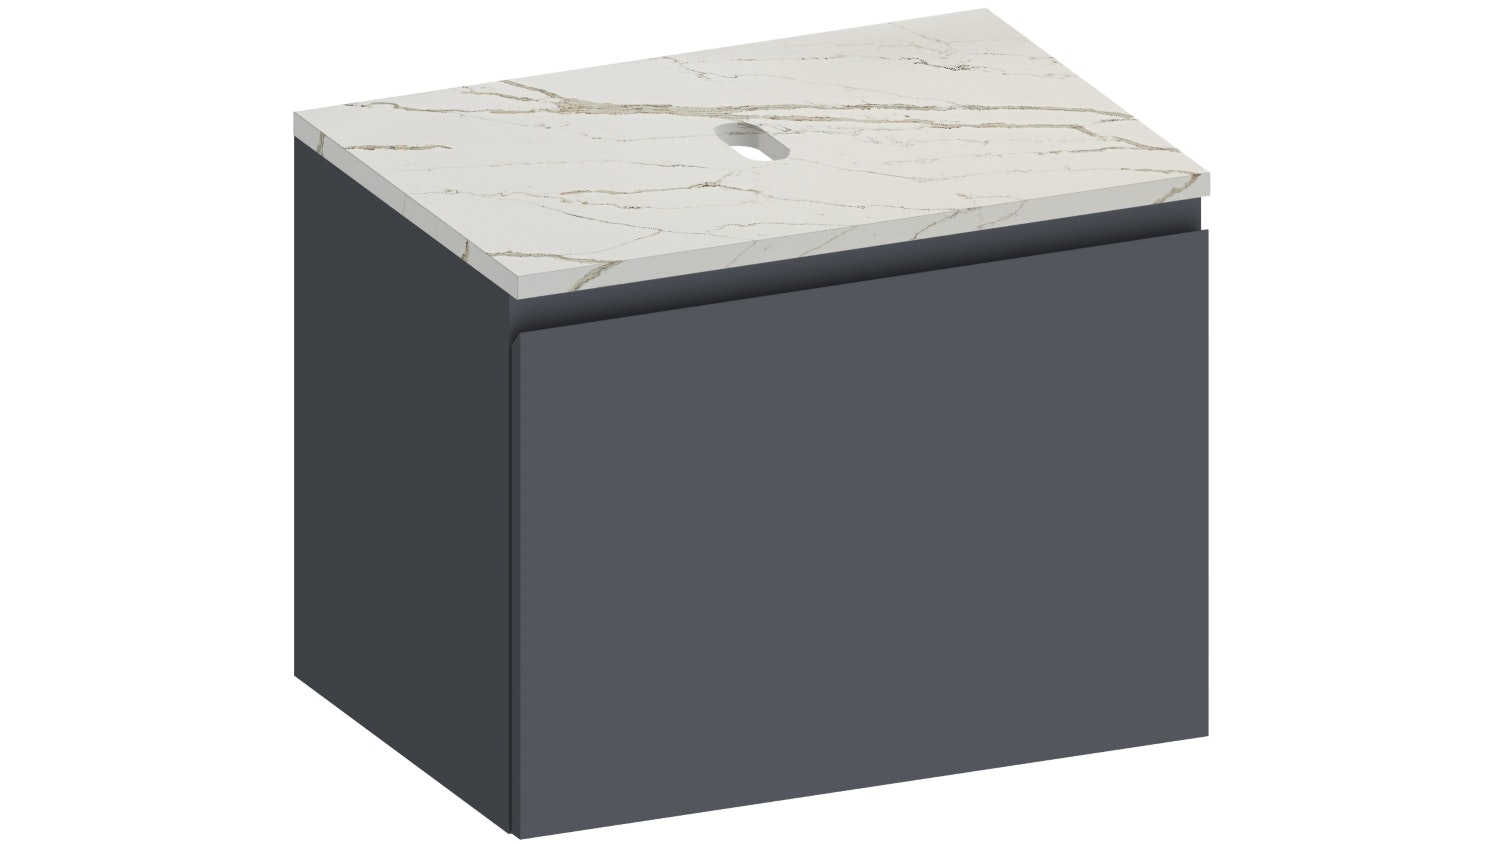 Kokoon Elements Wall Hung Vanity with Vena D'oro Stone Top - Matte Graphite